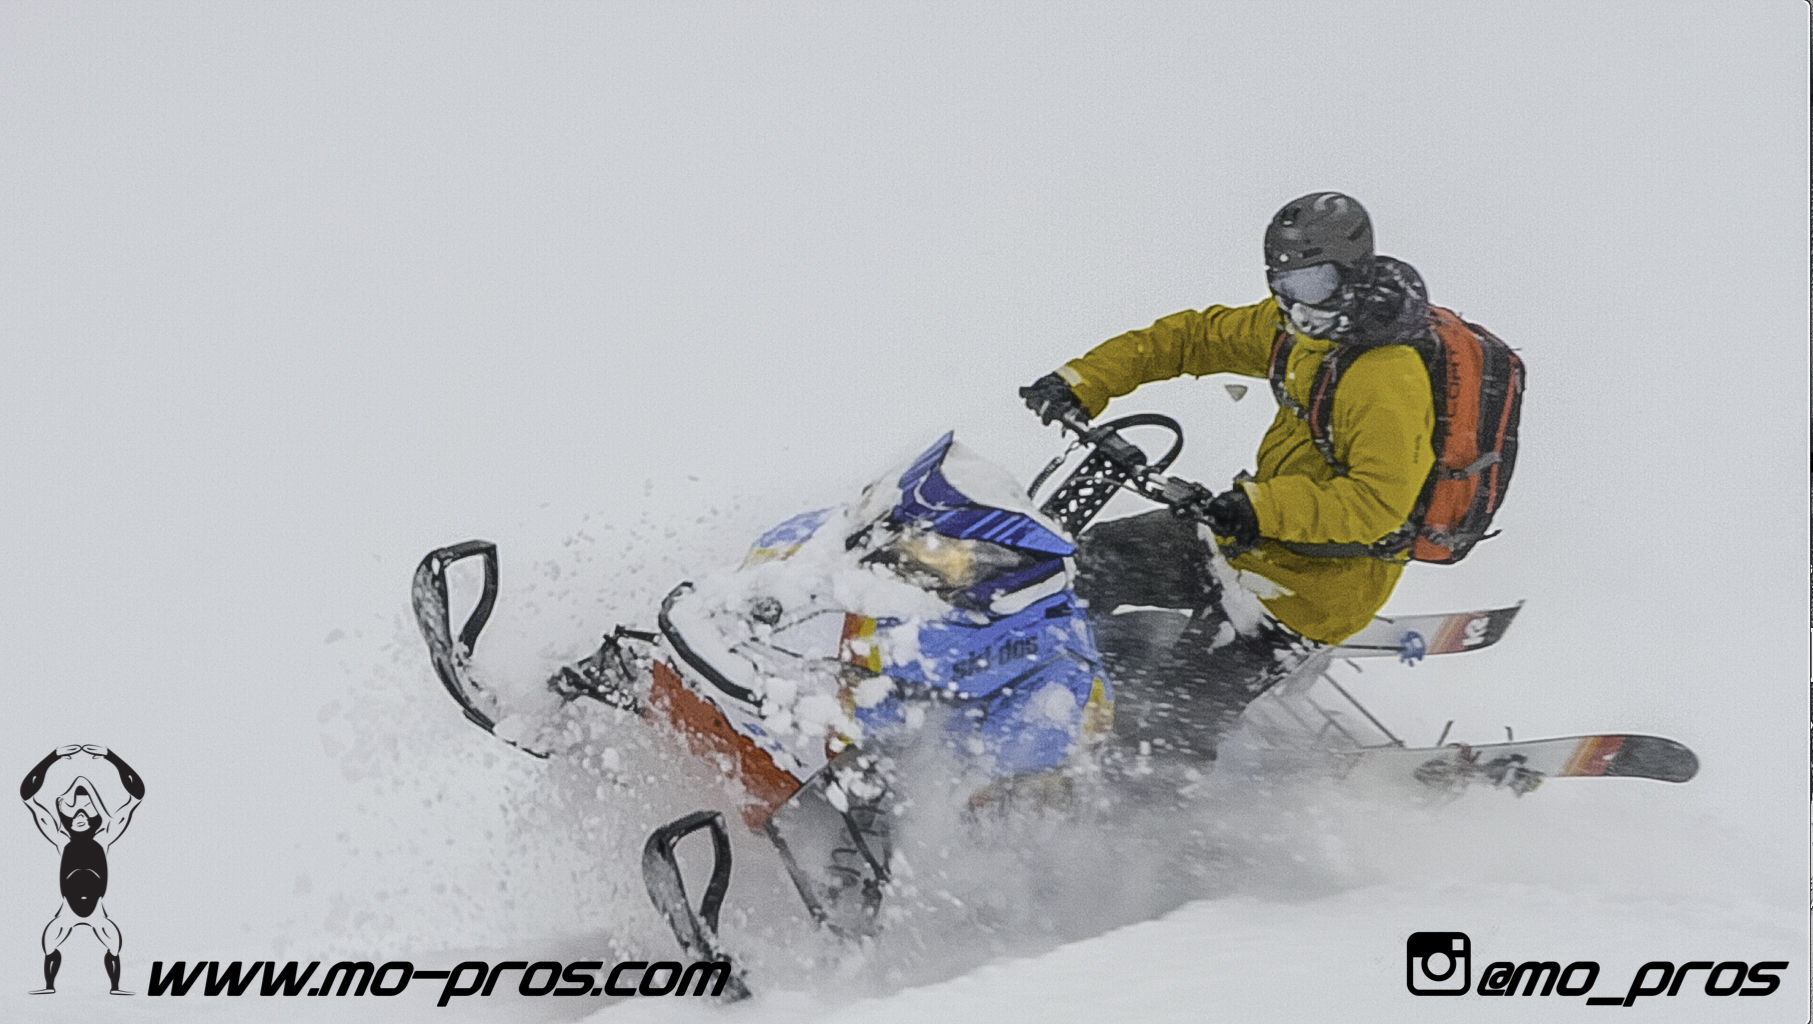 117_snowmobile bag_Snowmobile_timbersled bag_gas Rack_Gear_Gun Rack_LinQ Snowboard Ski_Ski_Snowbike_Timbersled Rack_Tsaina Rack_CFR rack_Cheetah Factory Racing_Snowboard rack_snowboard_Snowboarding_T.jpg